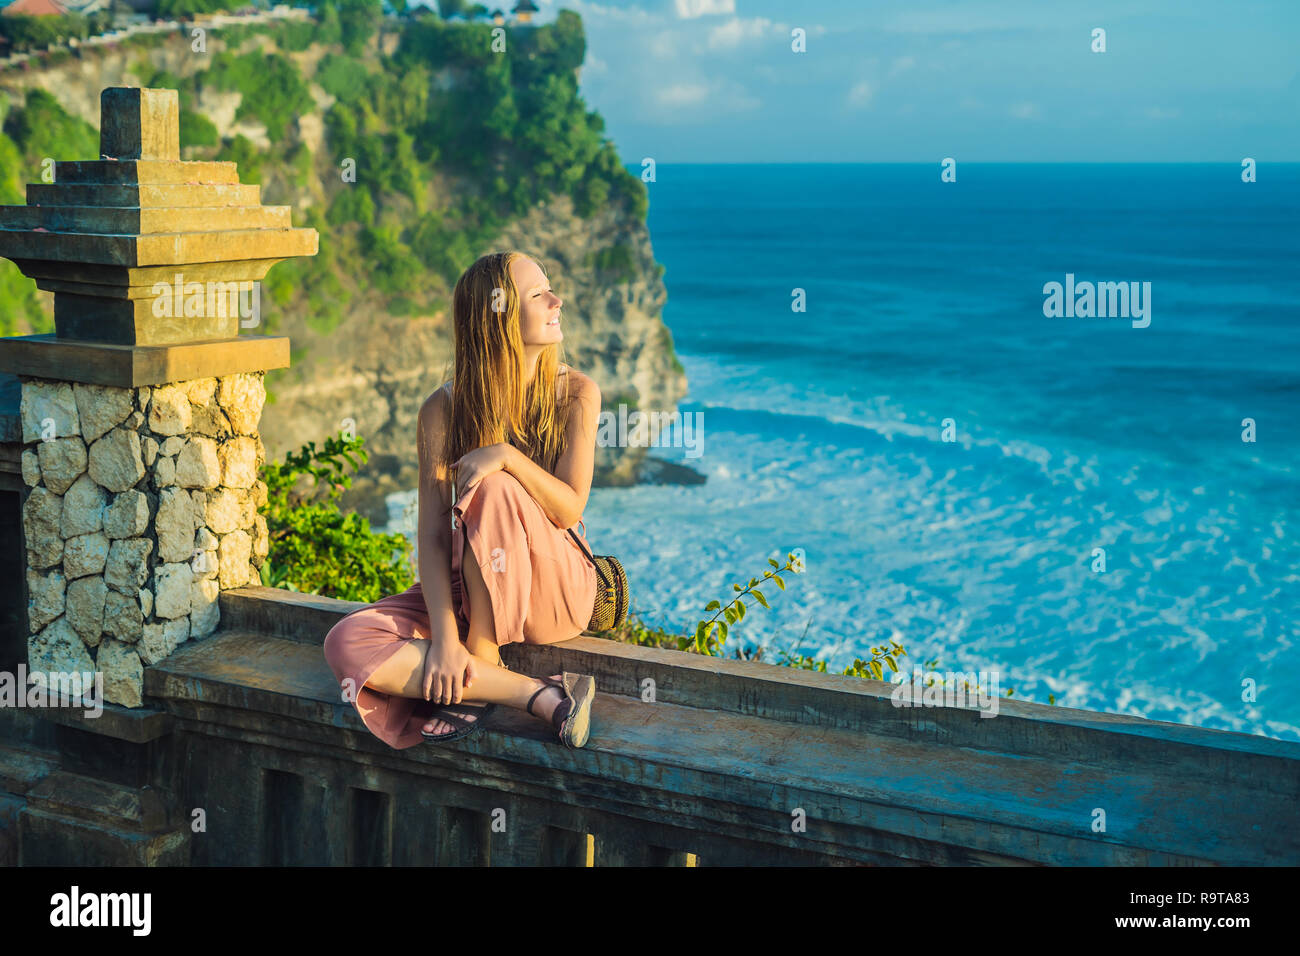 Young woman traveler in Pura Luhur Uluwatu temple, Bali, Indonesia. Amazing landscape - cliff with blue sky and sea - Stock Image